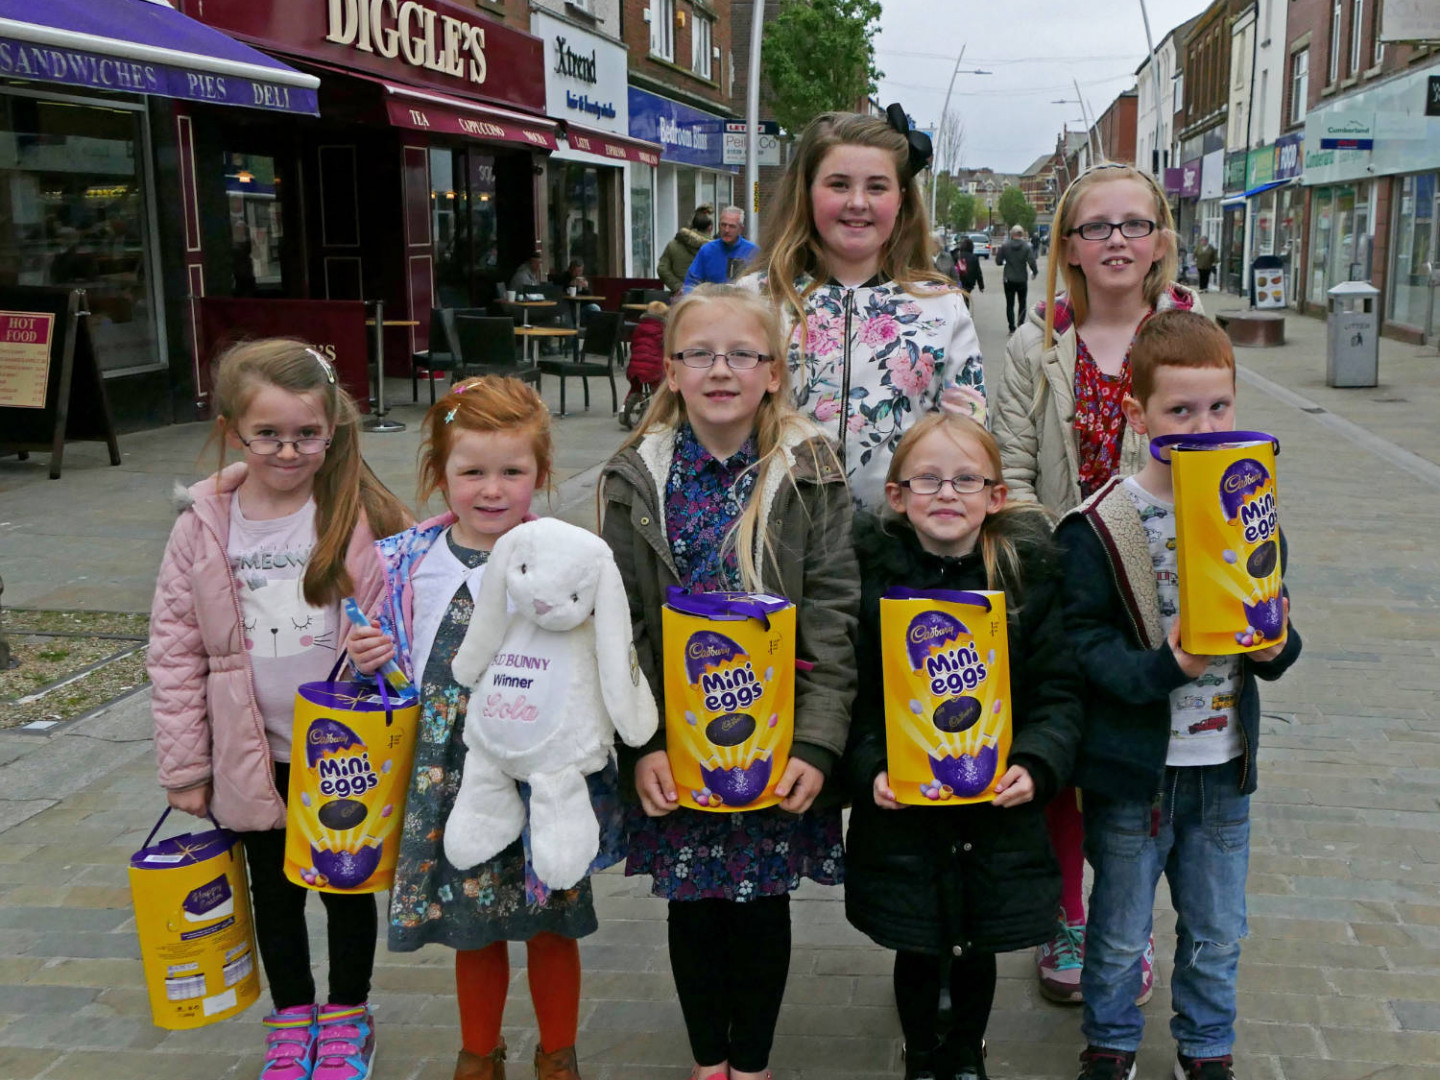 Easter Egg Hunt 2017 - The first public event organised by Barrow BID